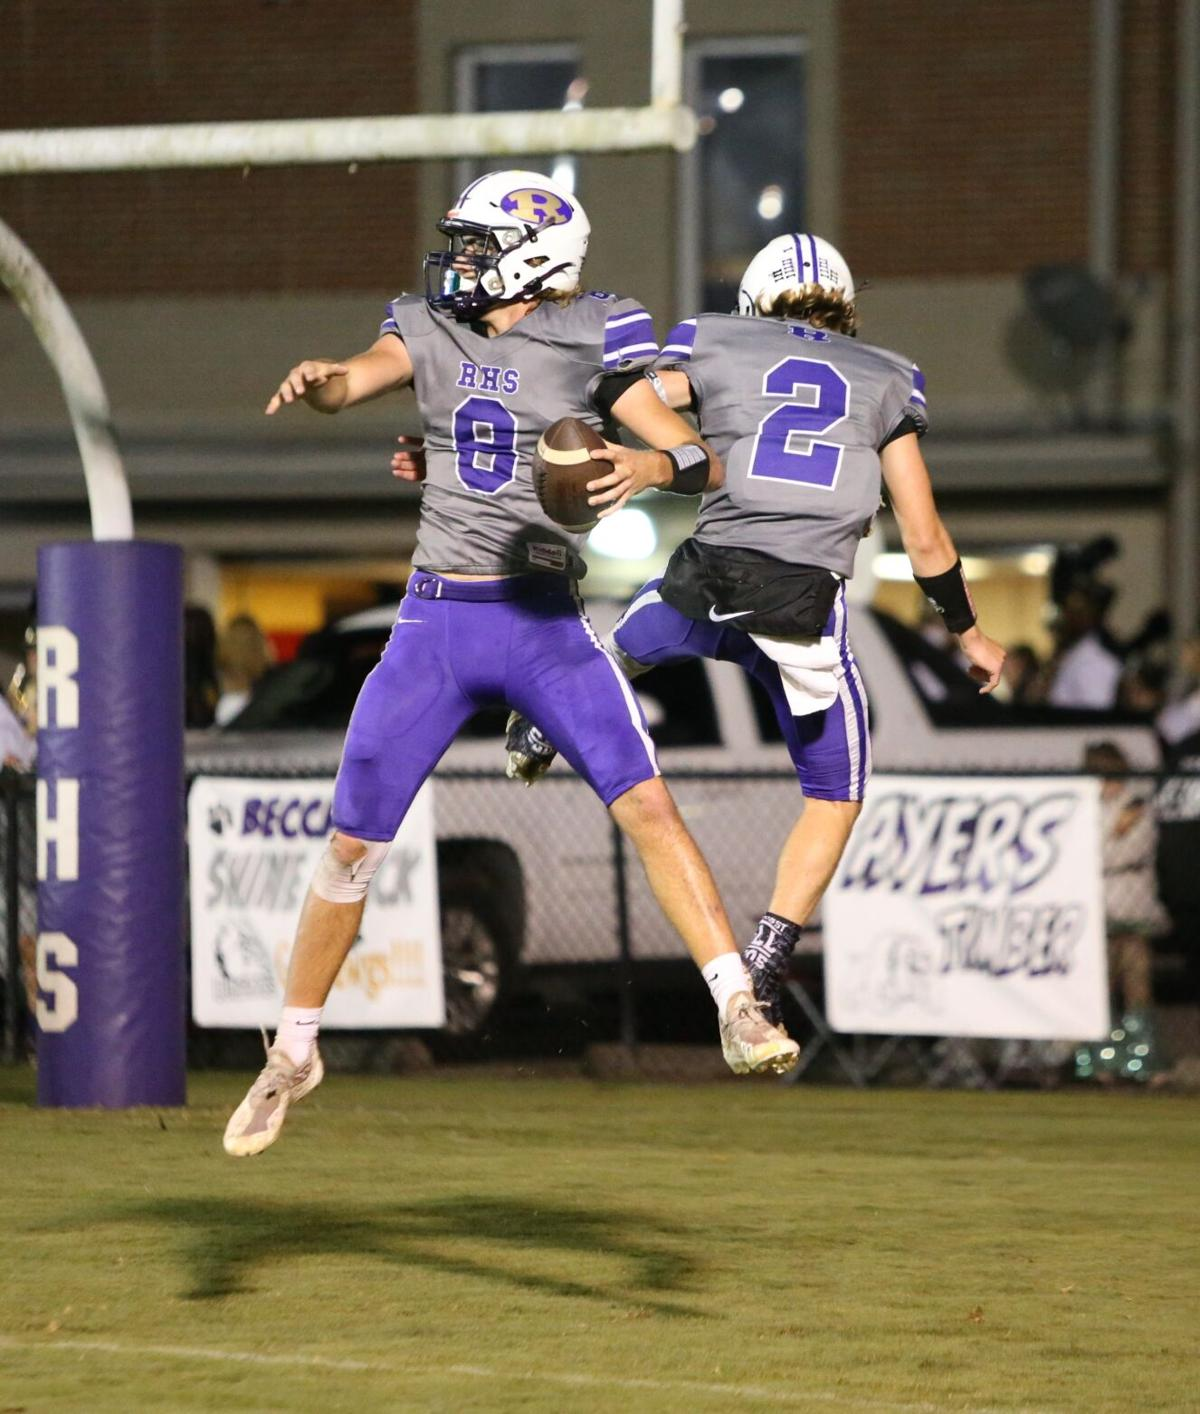 Football Friday Night: Playoff seeds for most local teams set, stakes raised for Handley-Clay Central game next week